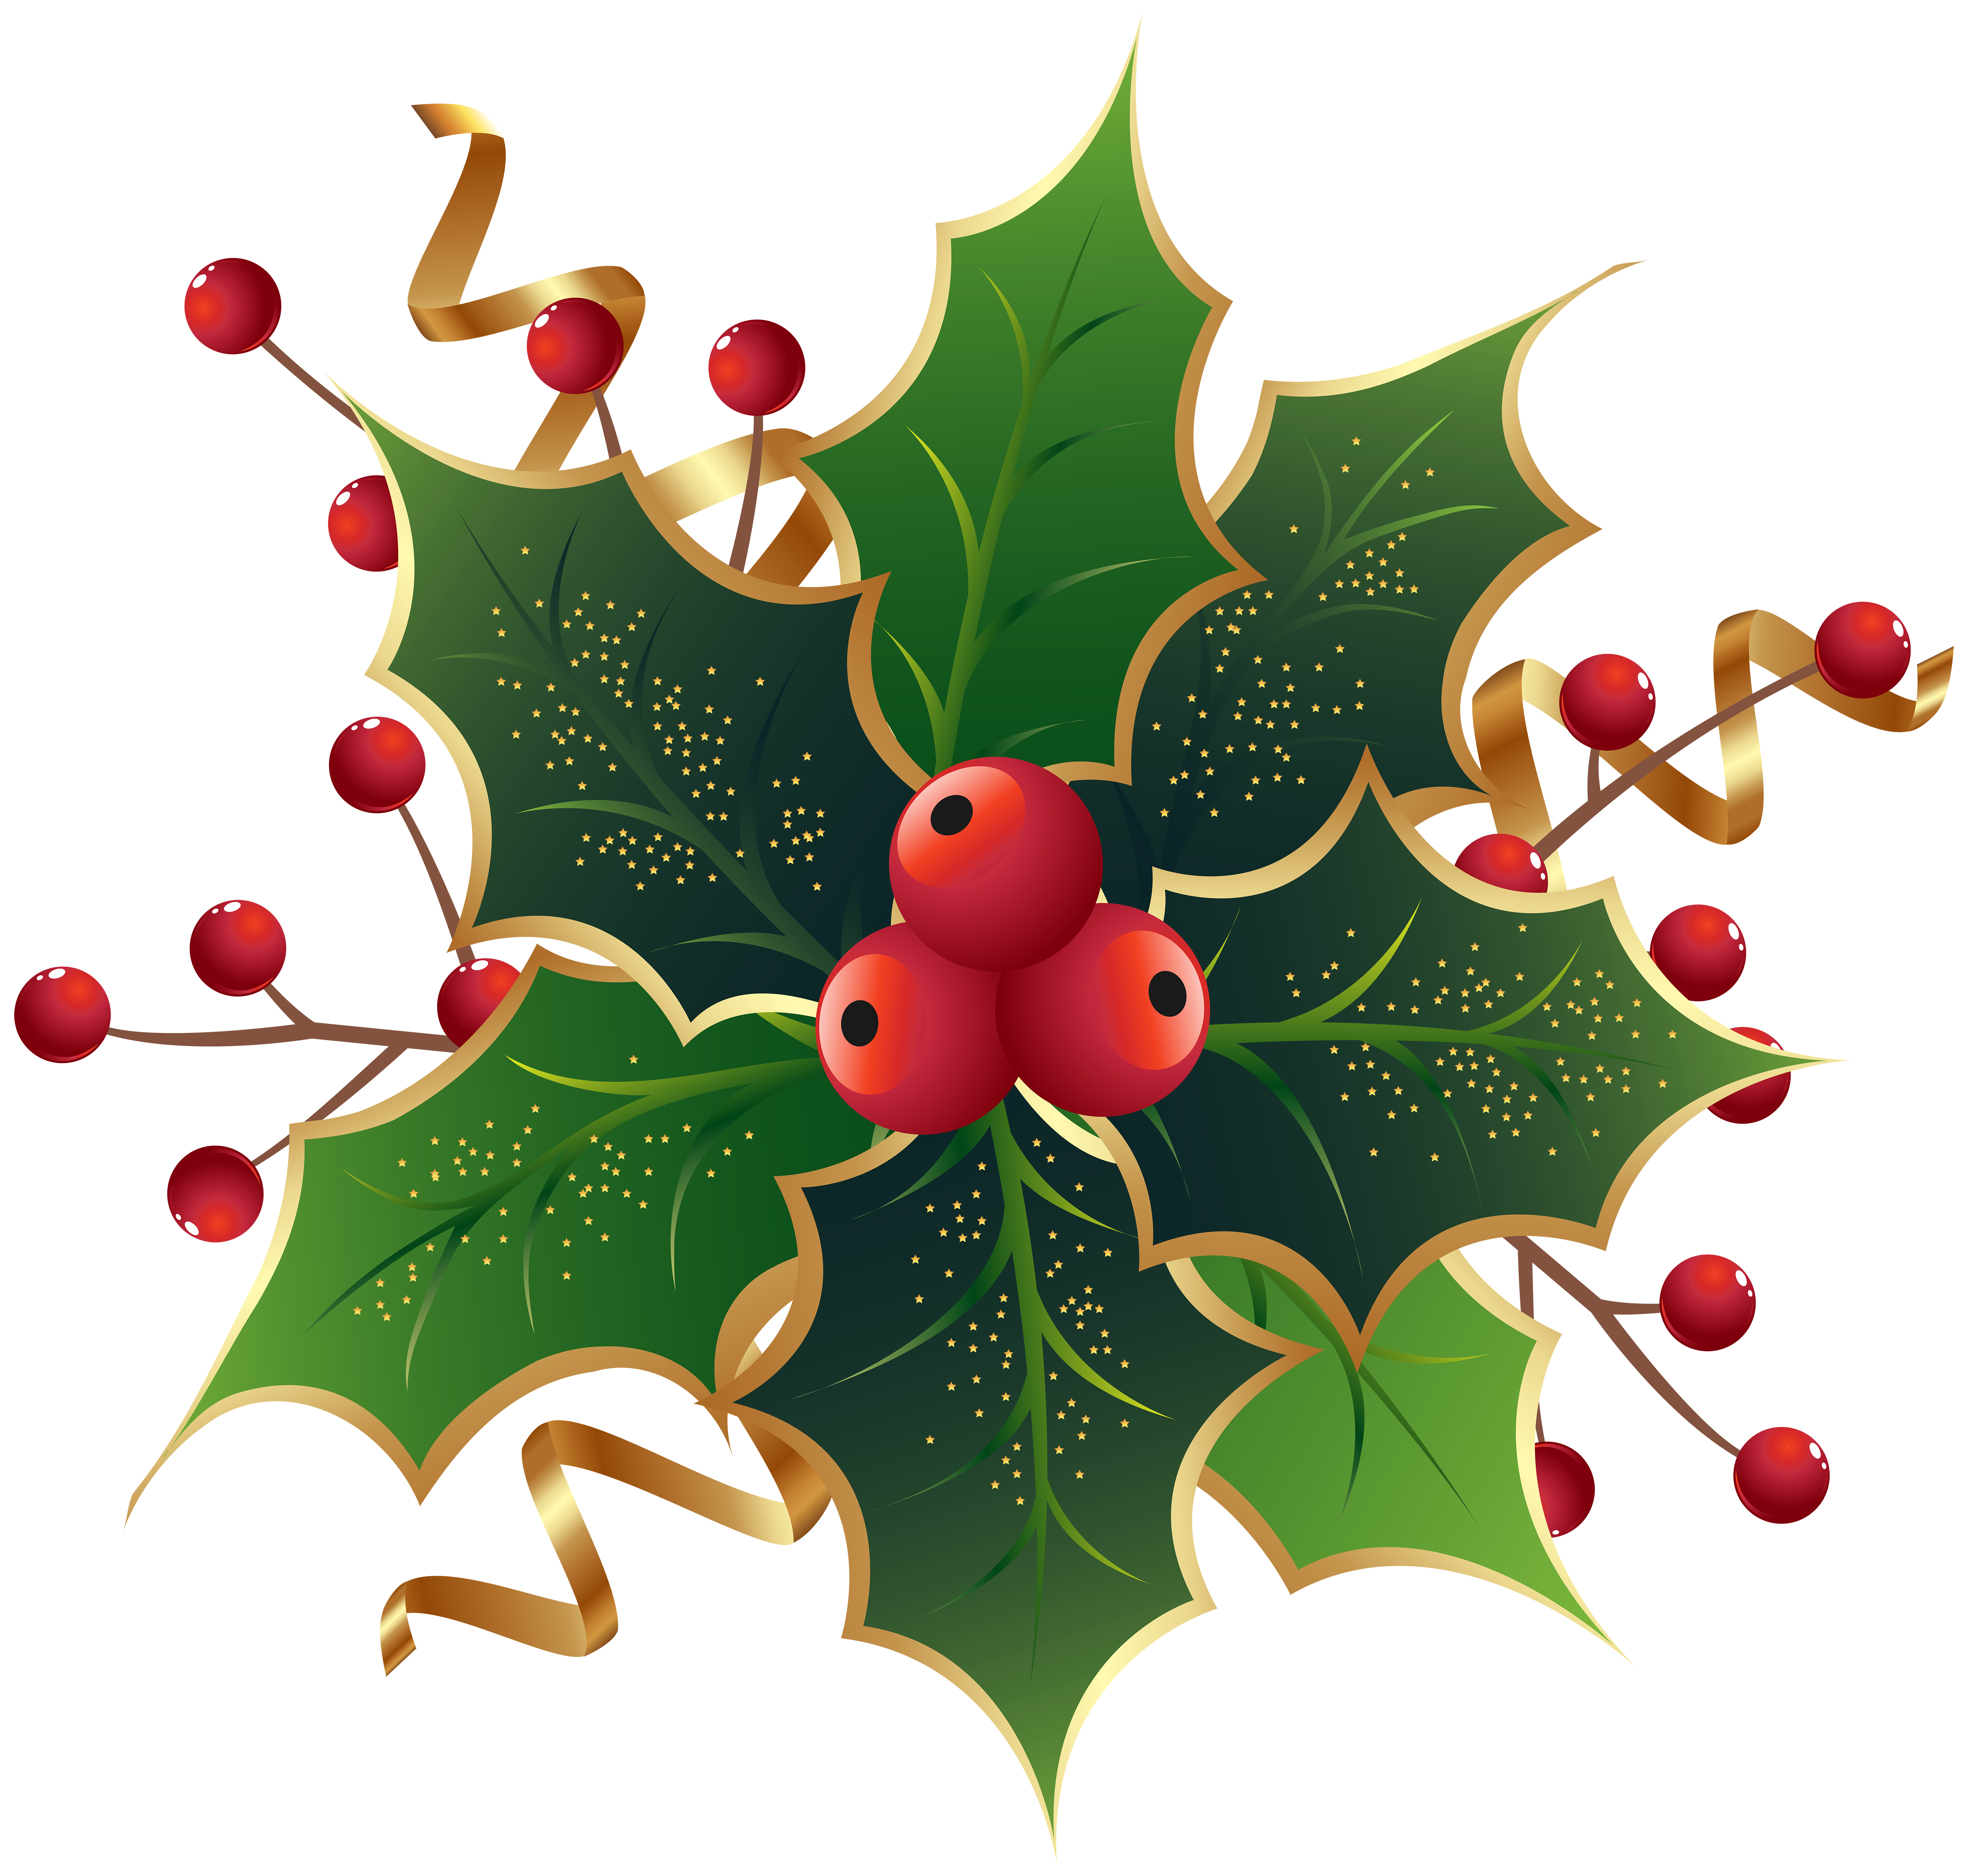 clip free download Mistletoe clipart holly sprig. Christmas png clip art.